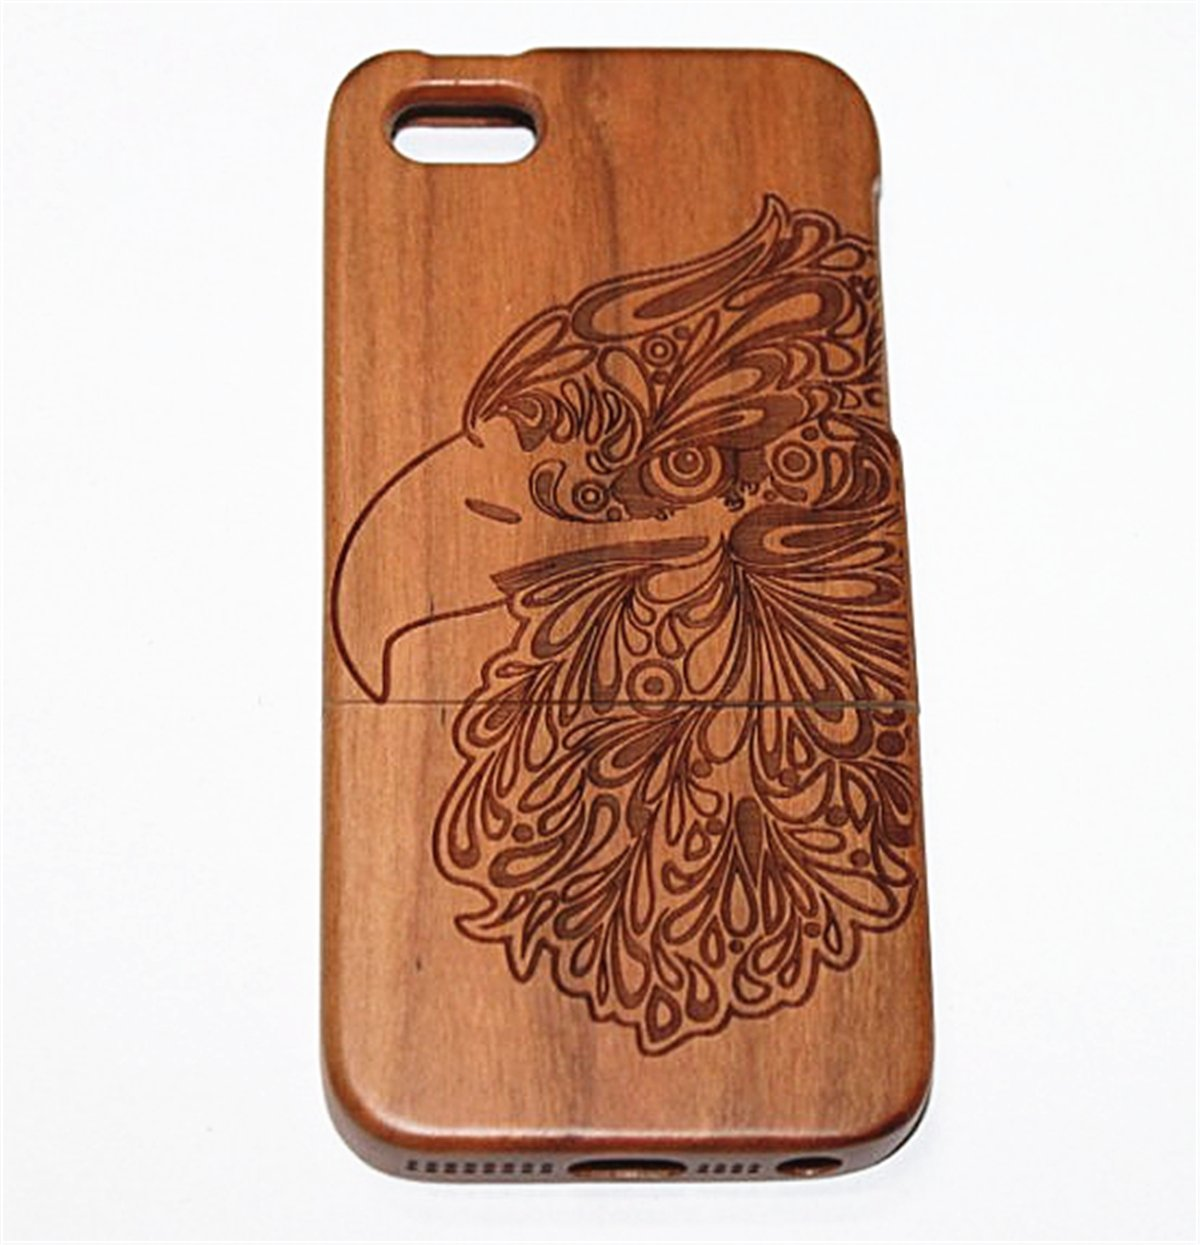 S4 Case, Firefish Unique Eco-Friendly 100% Real Natural Wood With Laser Engraved Pattern Drop & Shock Protective Super Hard Shell Case For Galaxy S4 -Eagle